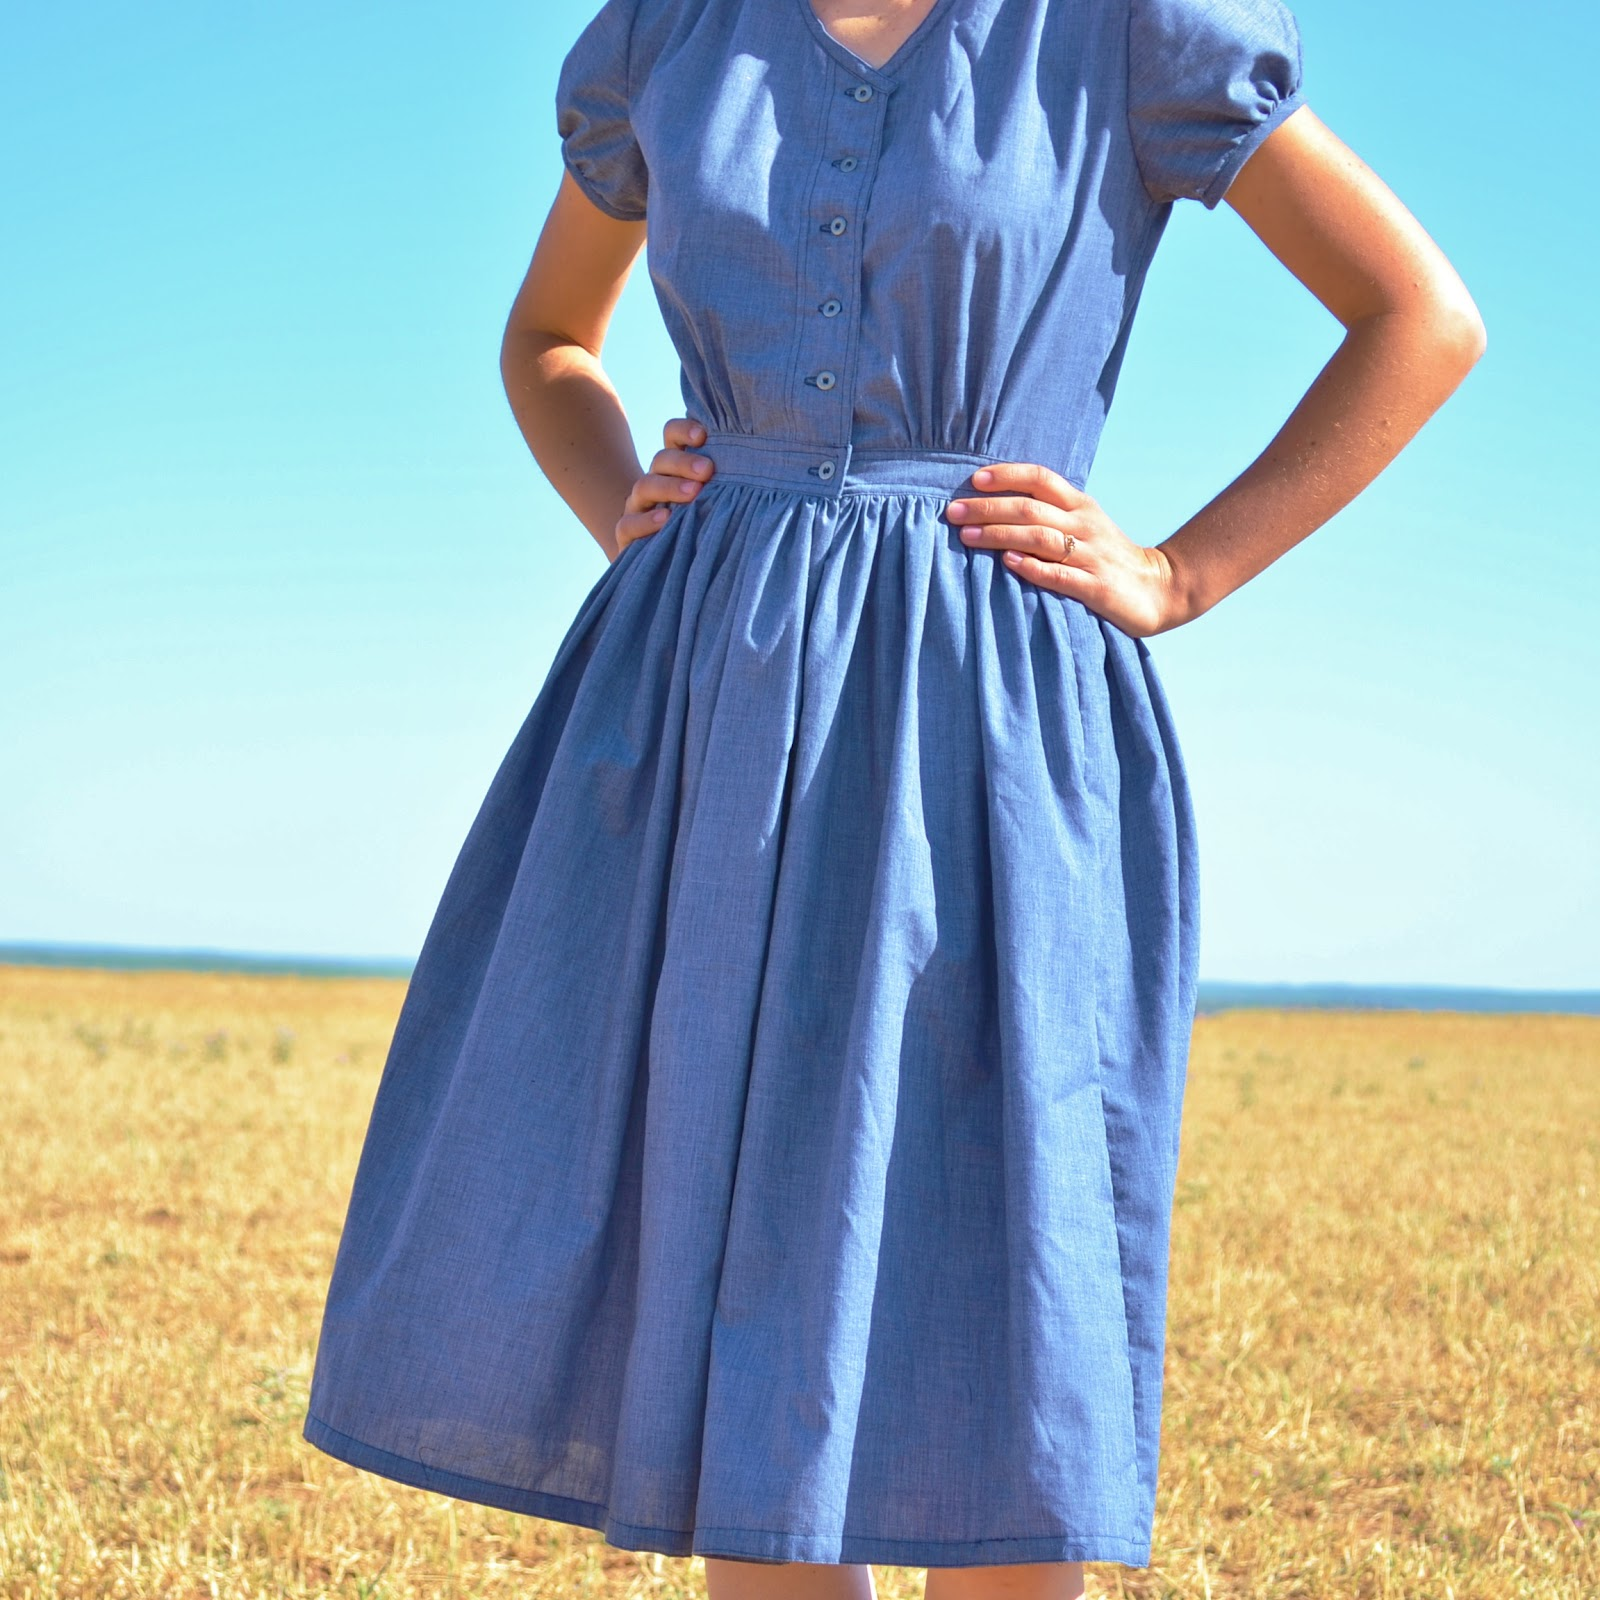 the story of a seamstress 40s inspired house dress